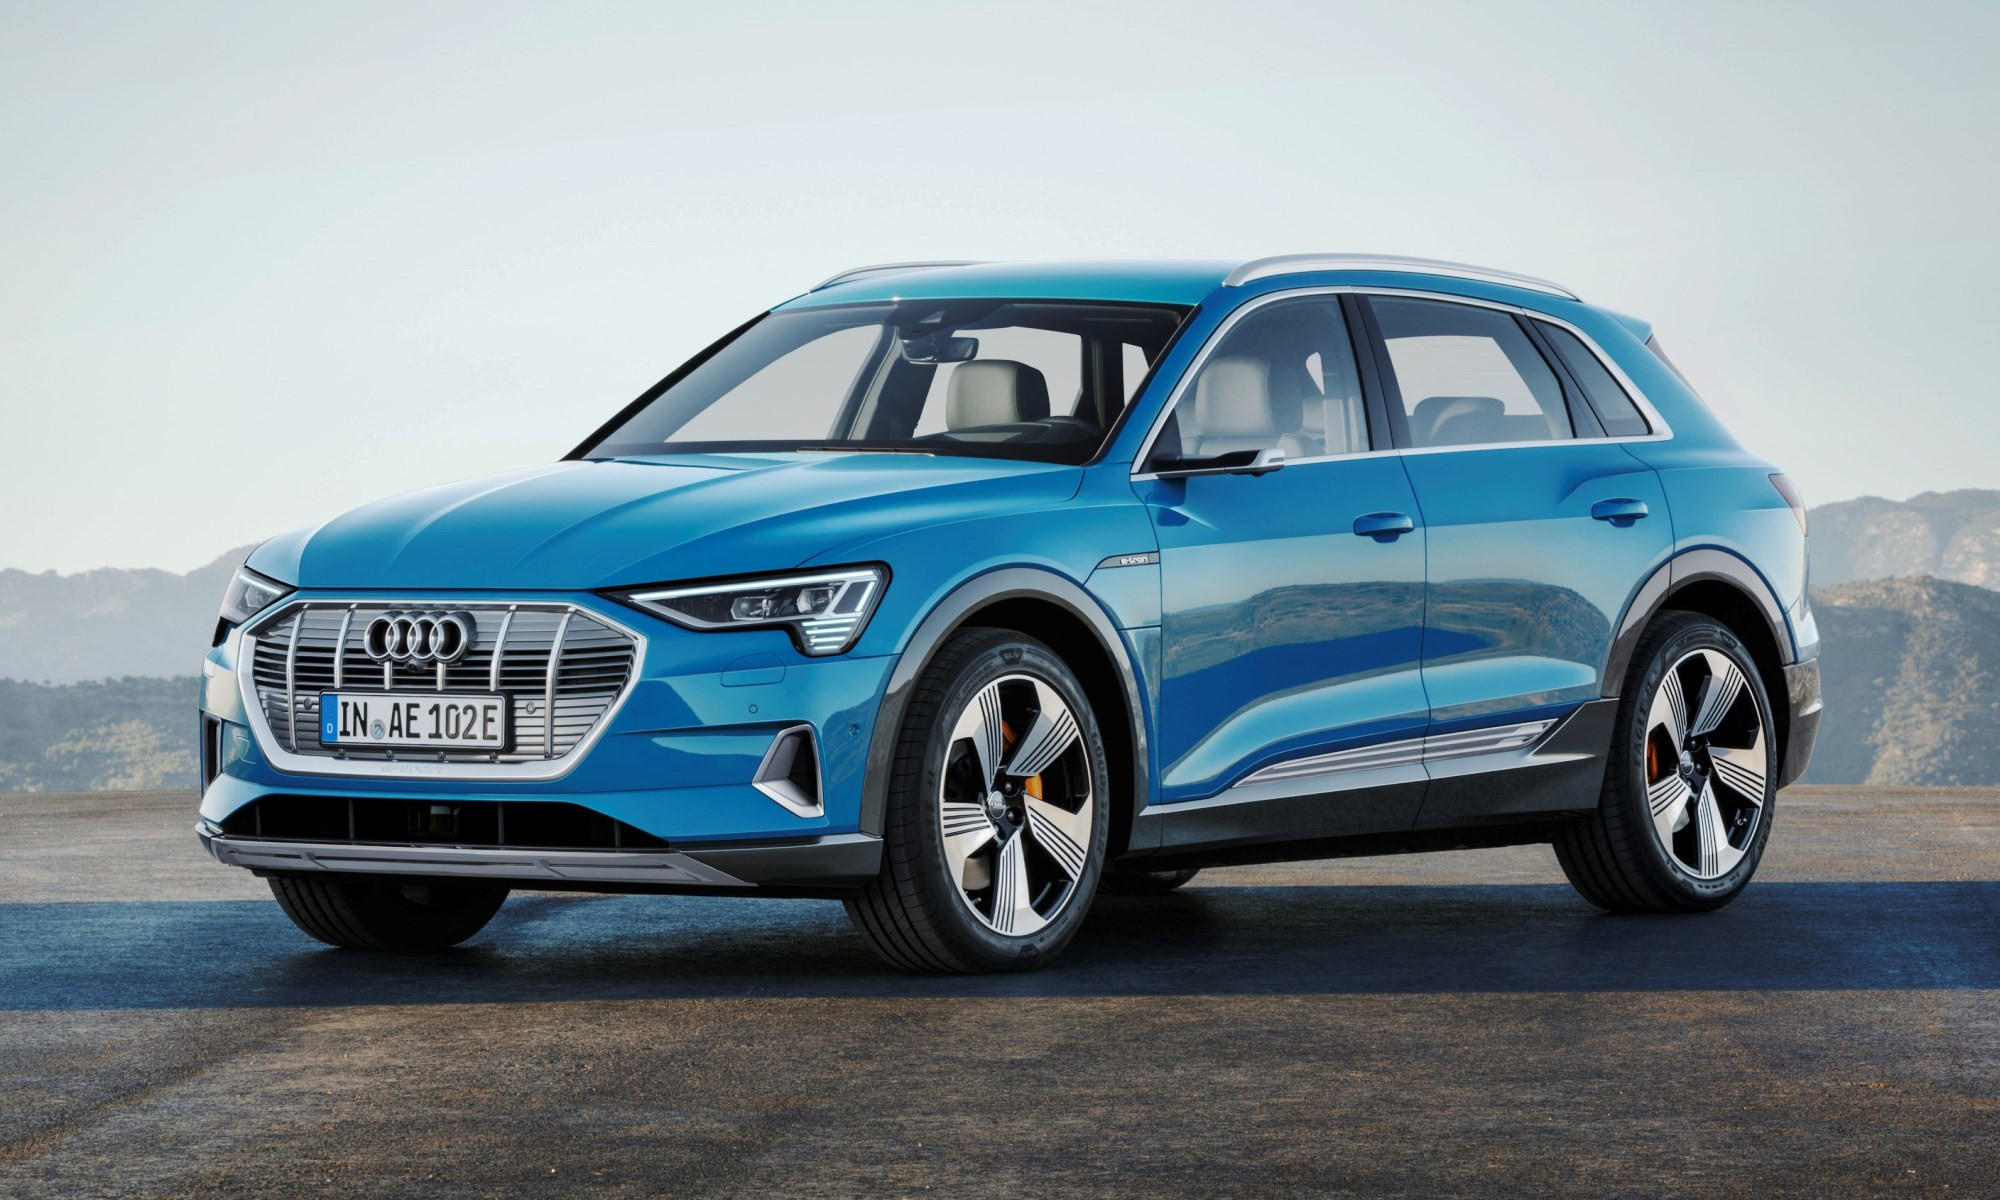 Audi e-tron is the company's first all-electric production car.